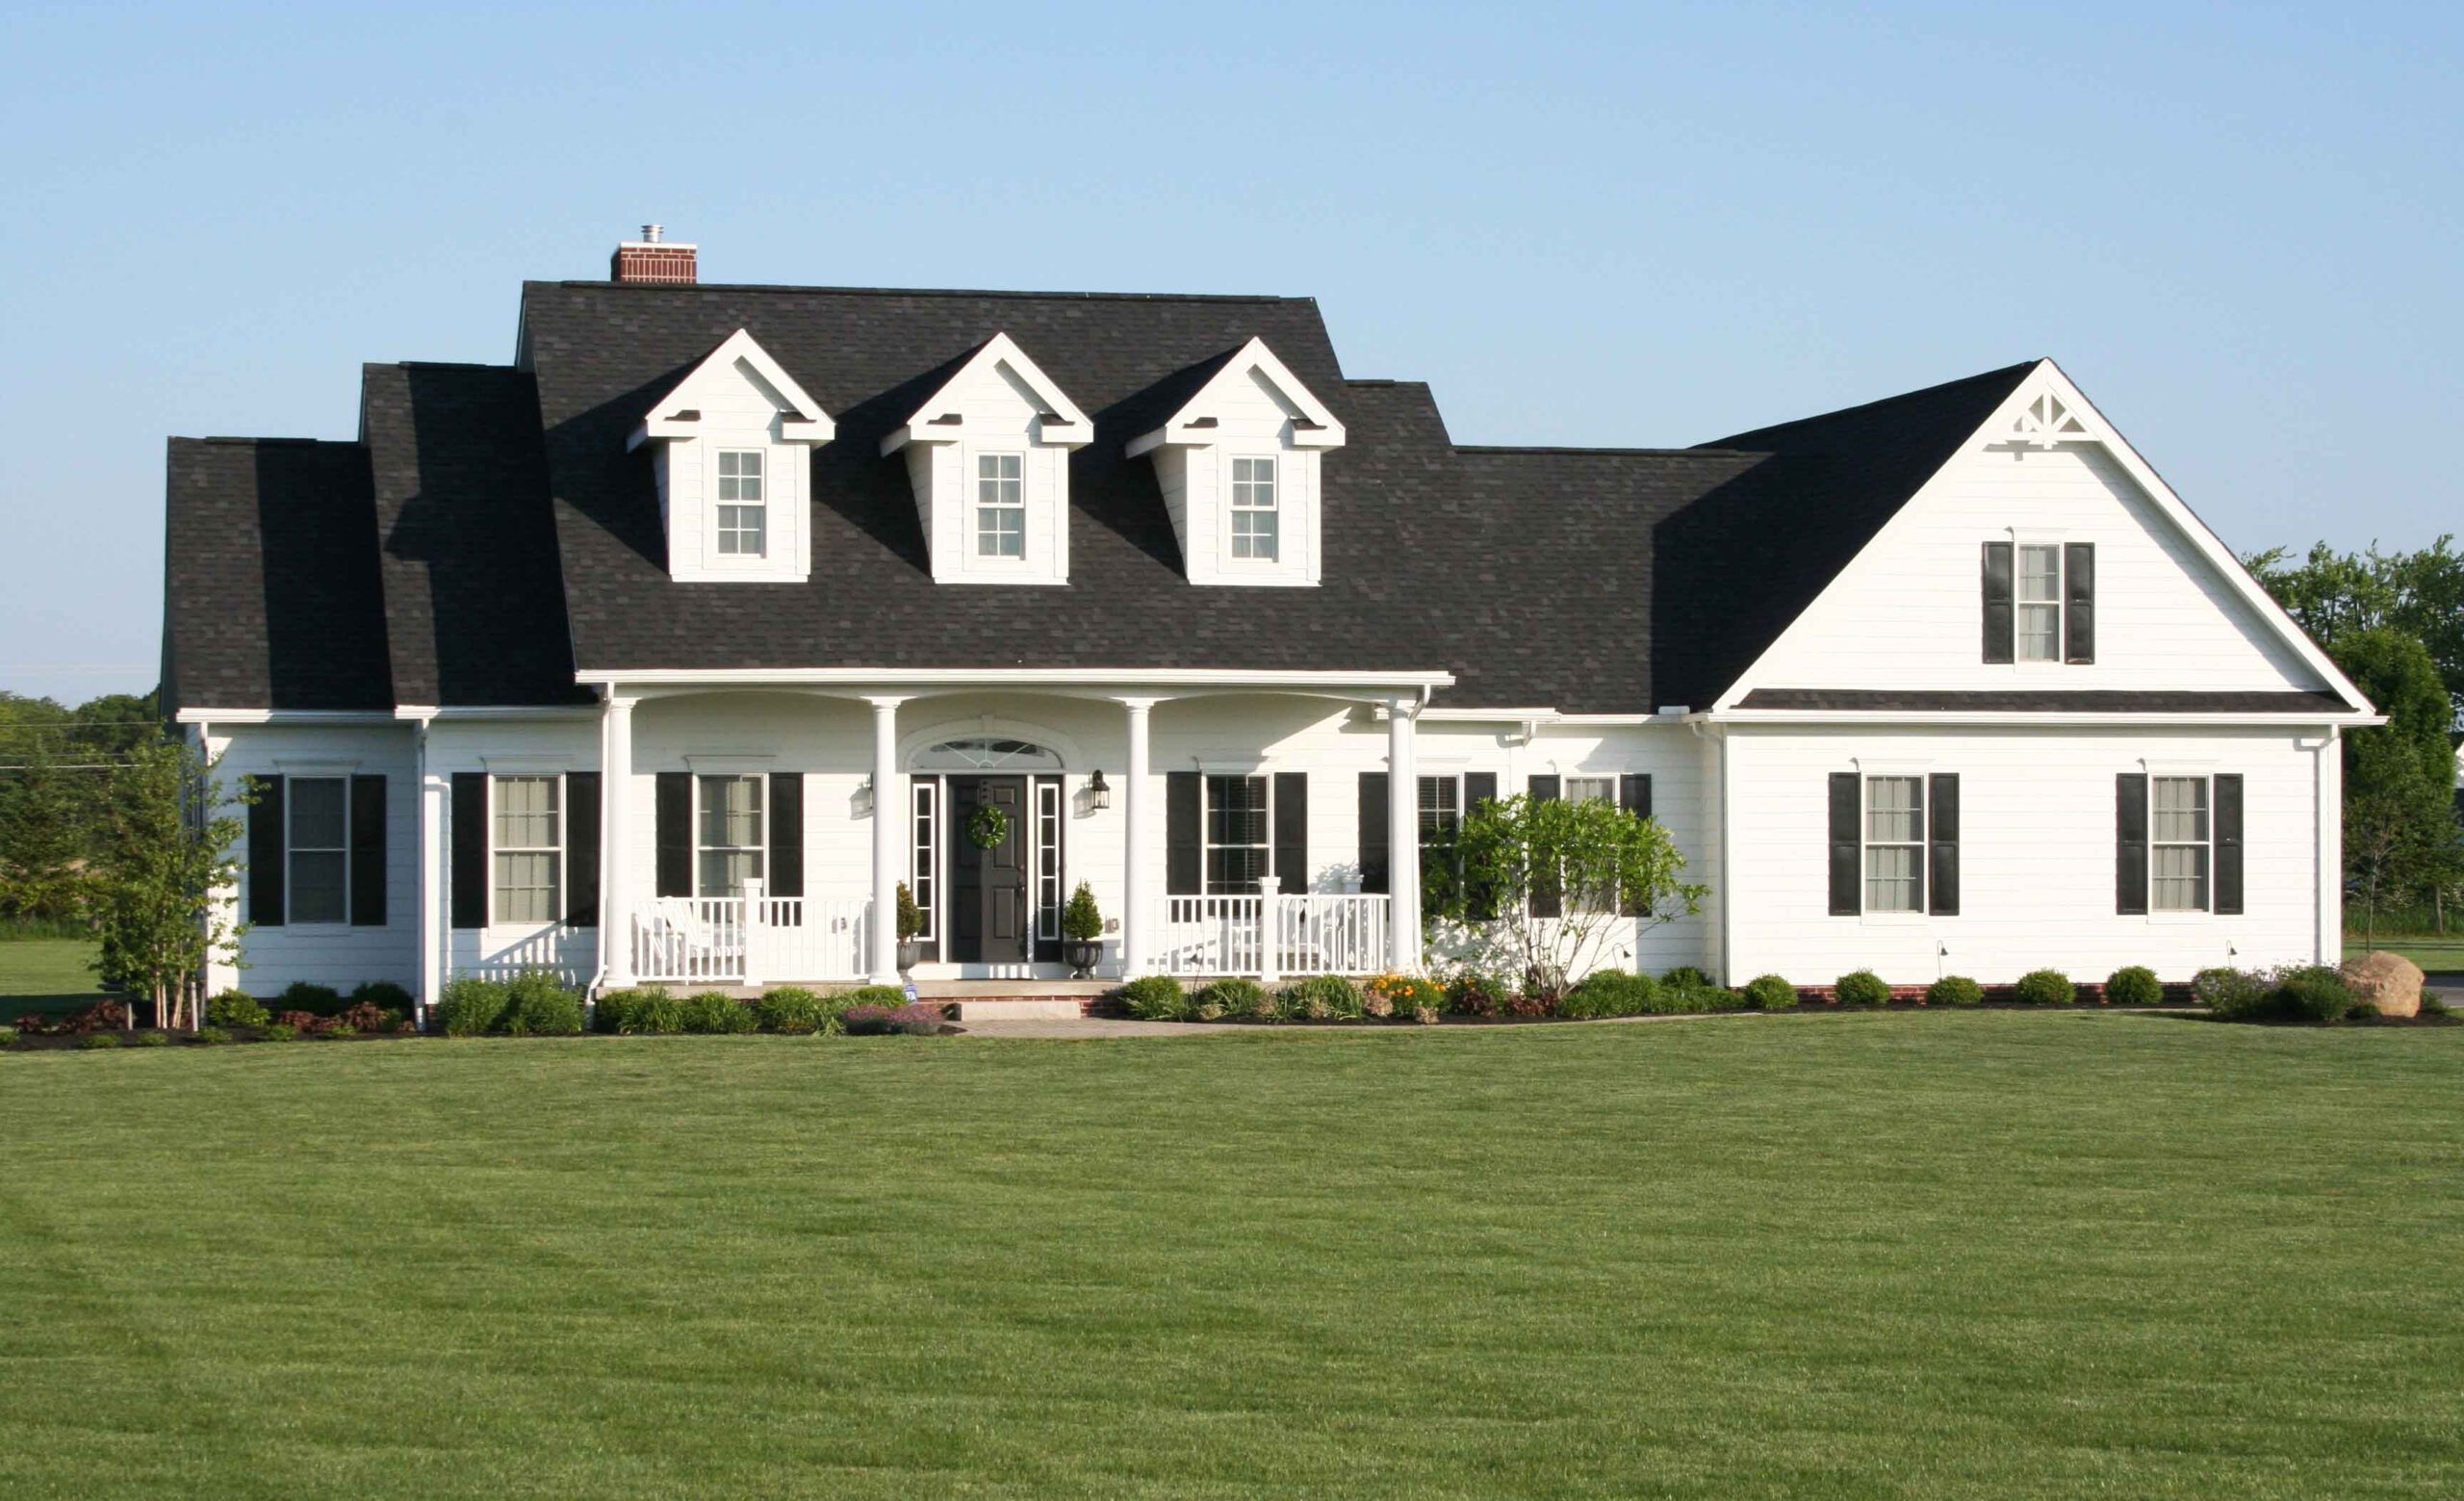 Simple Cape Cod House Plans In 2020 Cape Cod House Plans Farmhouse Style Exterior Exterior House Remodel